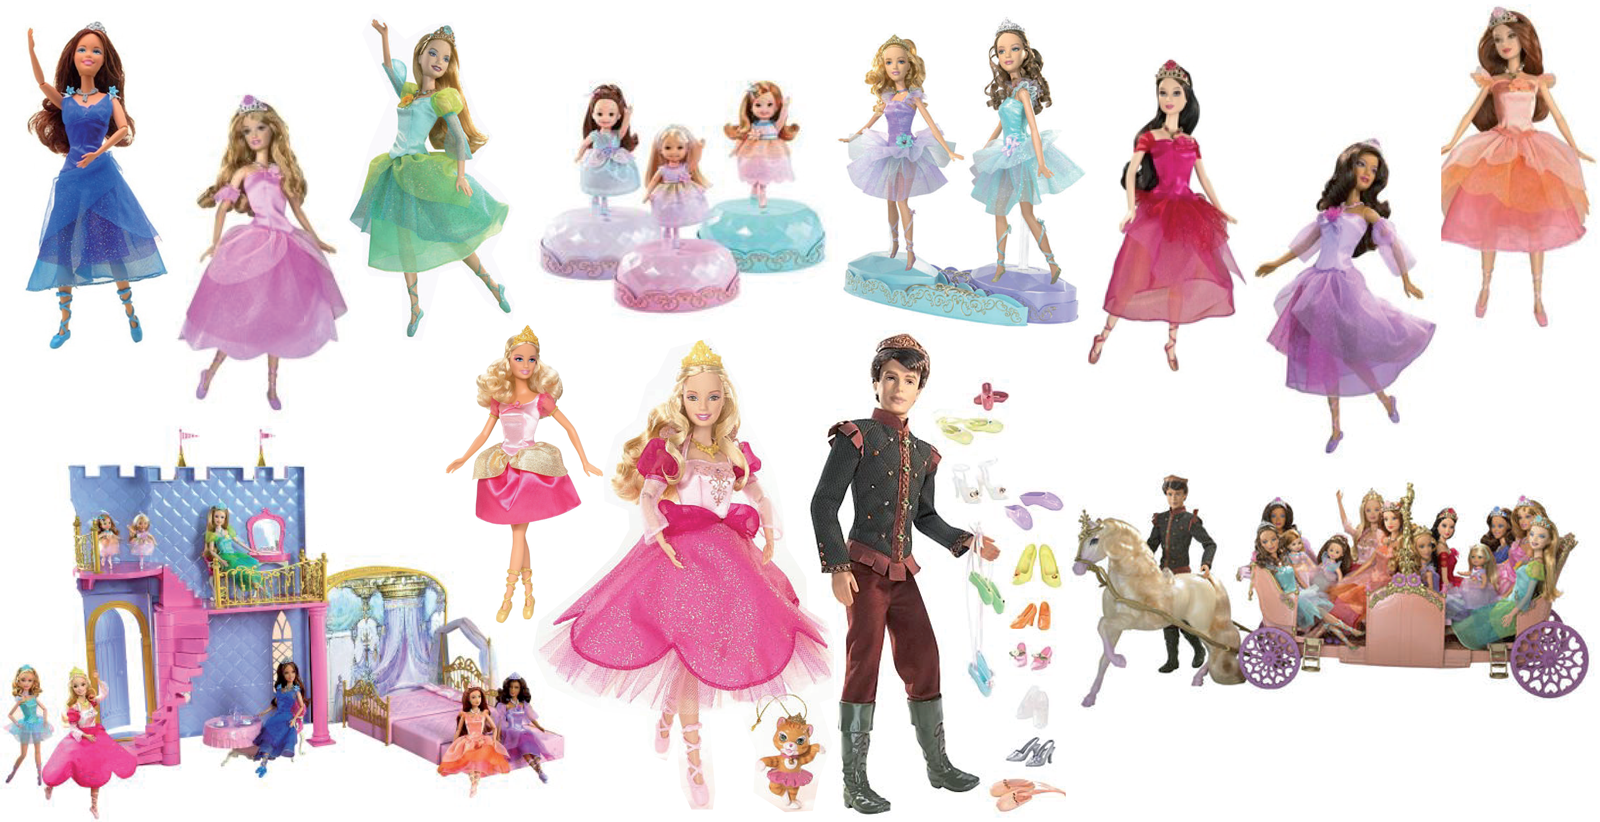 Barbies Princesses 7b562ee4